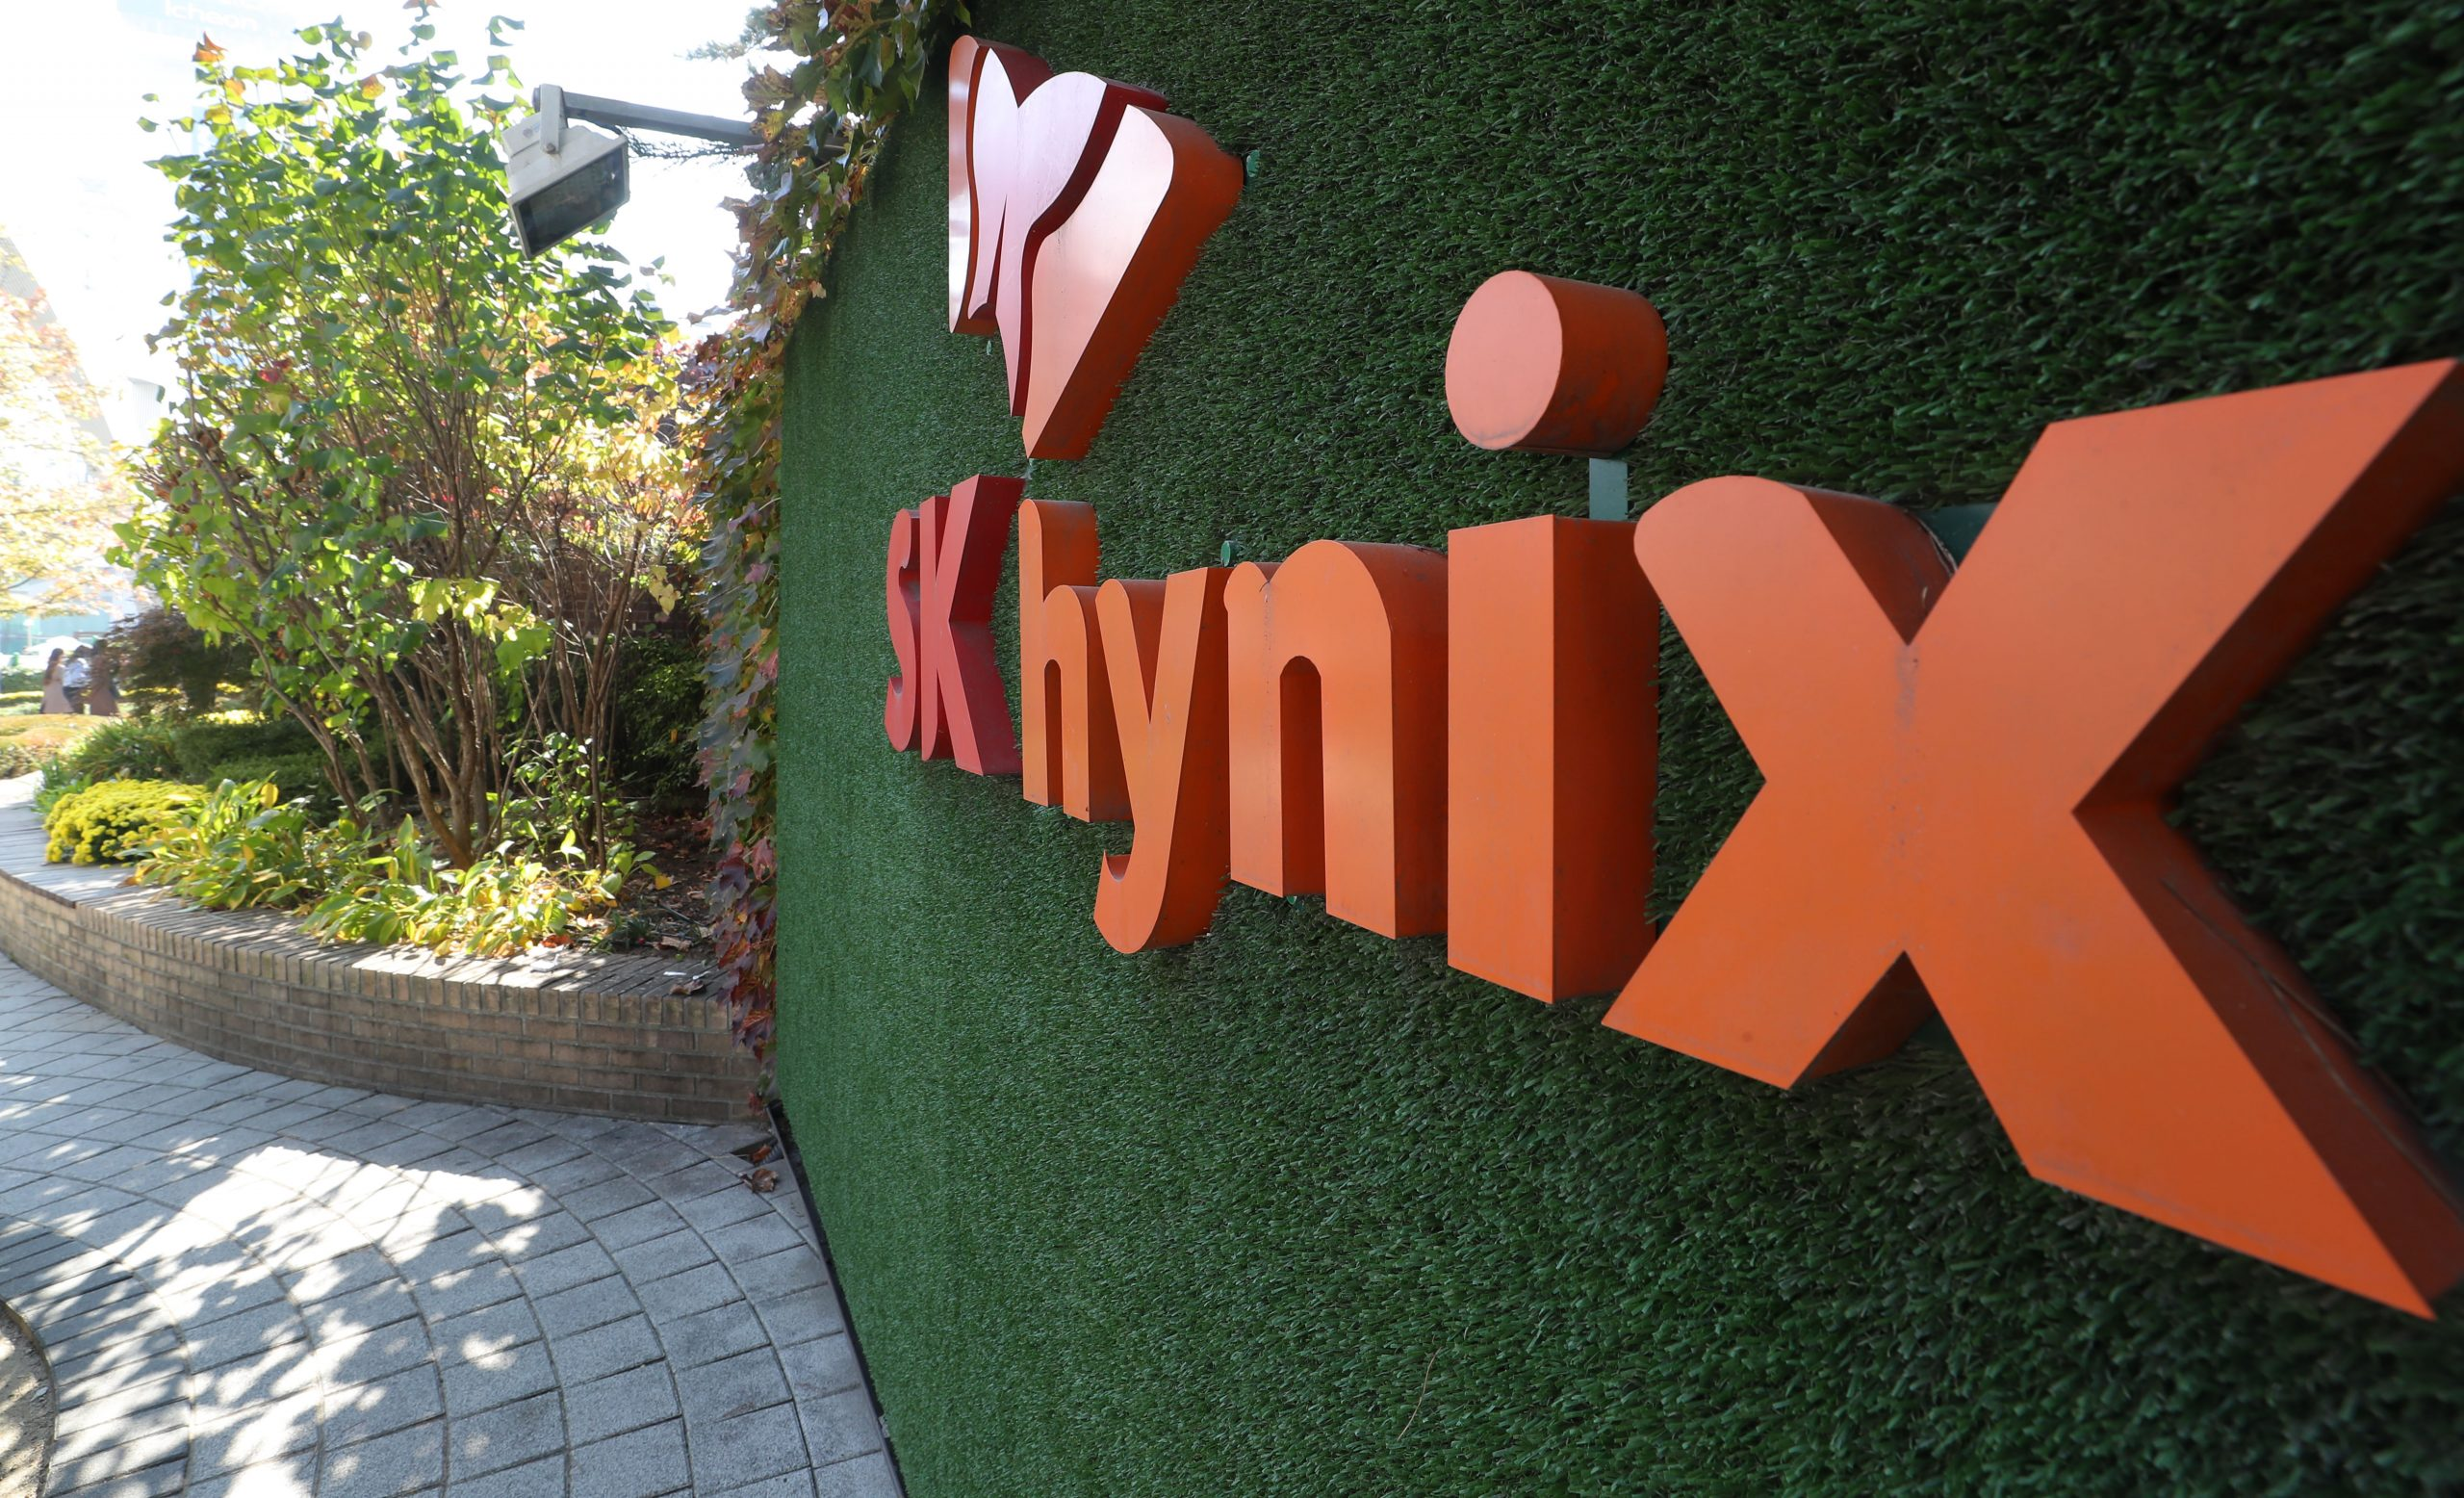 SK hynix settles chip patent dispute with Netlist